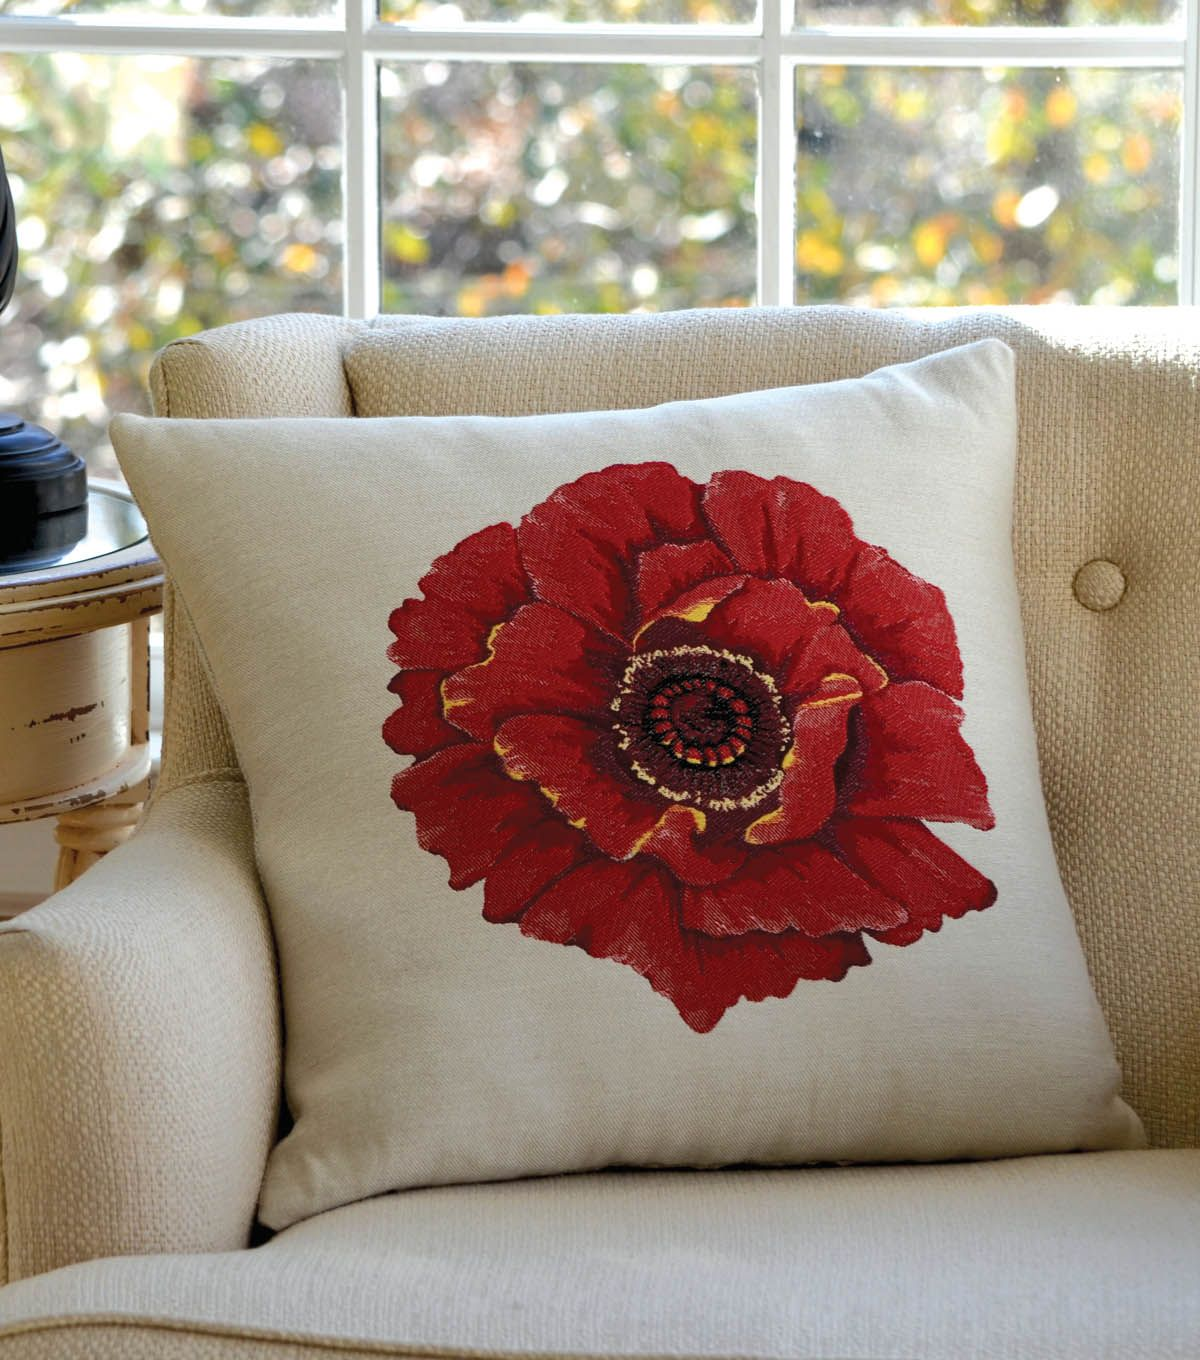 Square By Design Pillow Cover at Joann